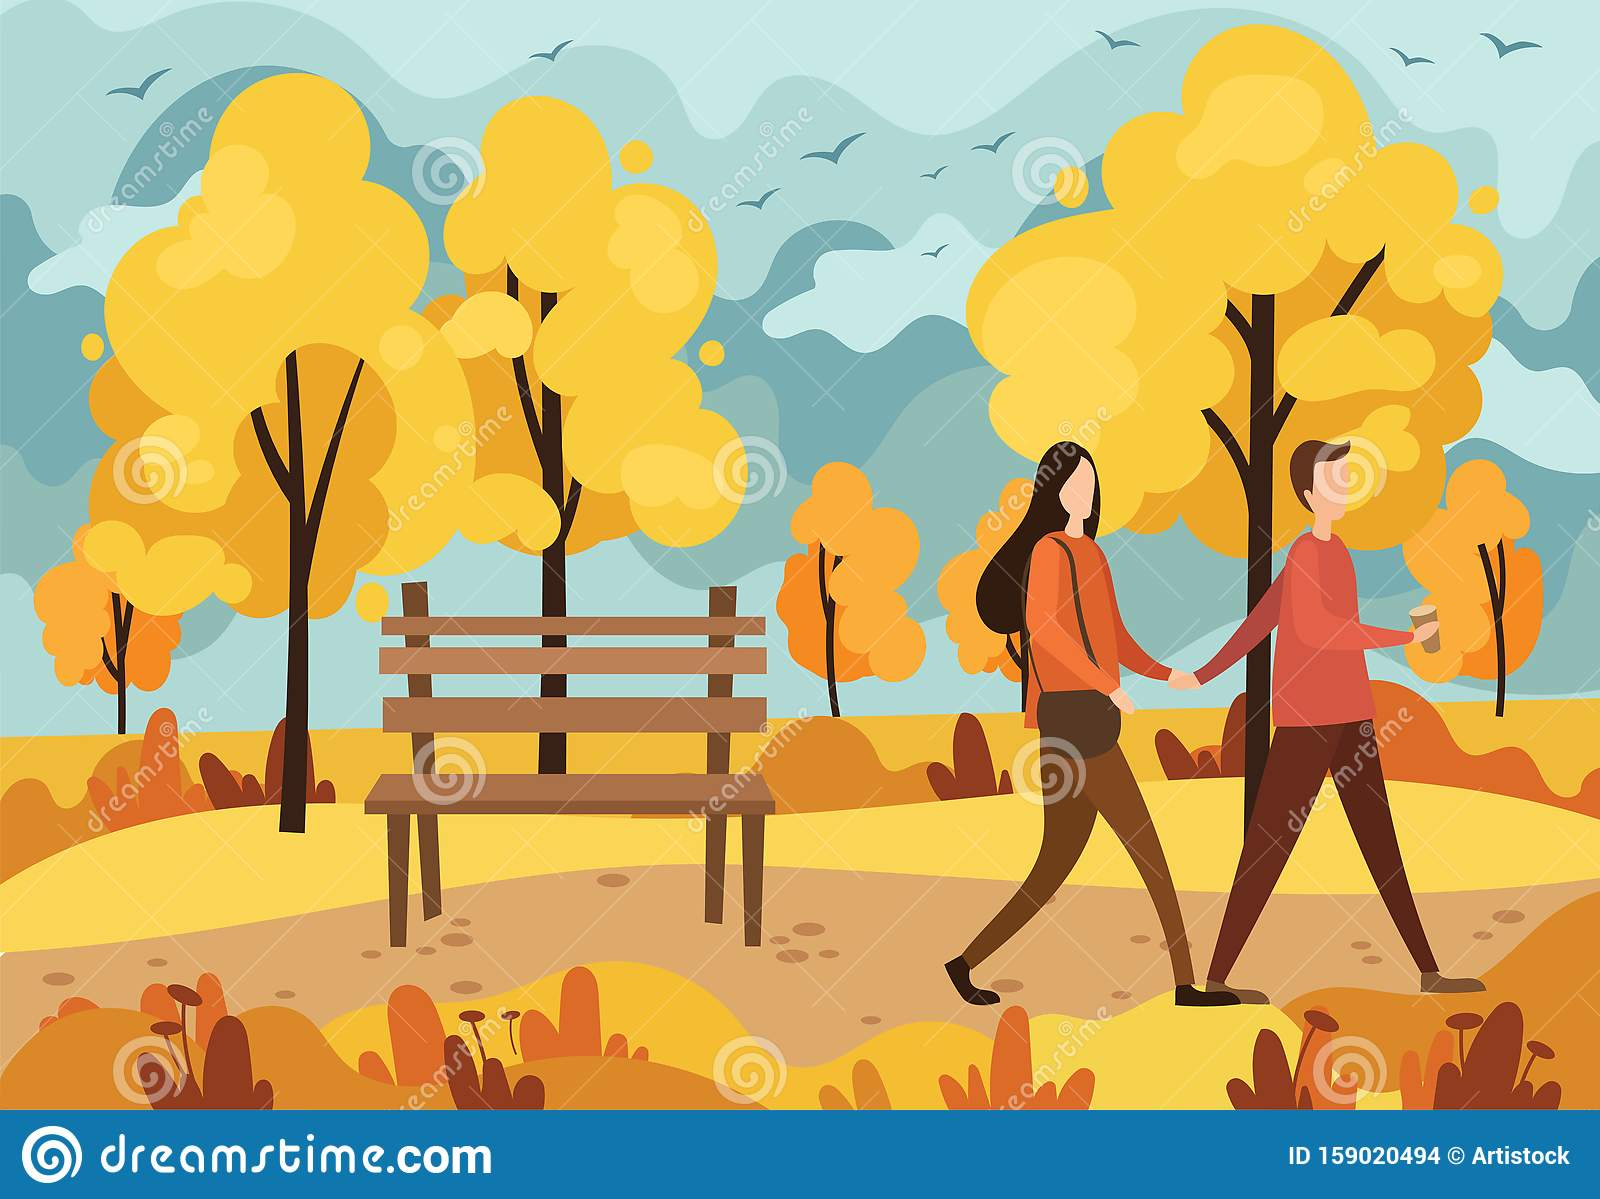 Autumn Park With A Bench And A Walking Couple In Love Vector Illustration Of A Cartoon Autumn Park With Yellow Trees Stock Vector Illustration Of Lovers Happy 159020494 Various formats from 240p to 720p hd (or even 1080p). https www dreamstime com autumn park bench walking couple love illustration cartoon autumn park yellow trees people autumn image159020494